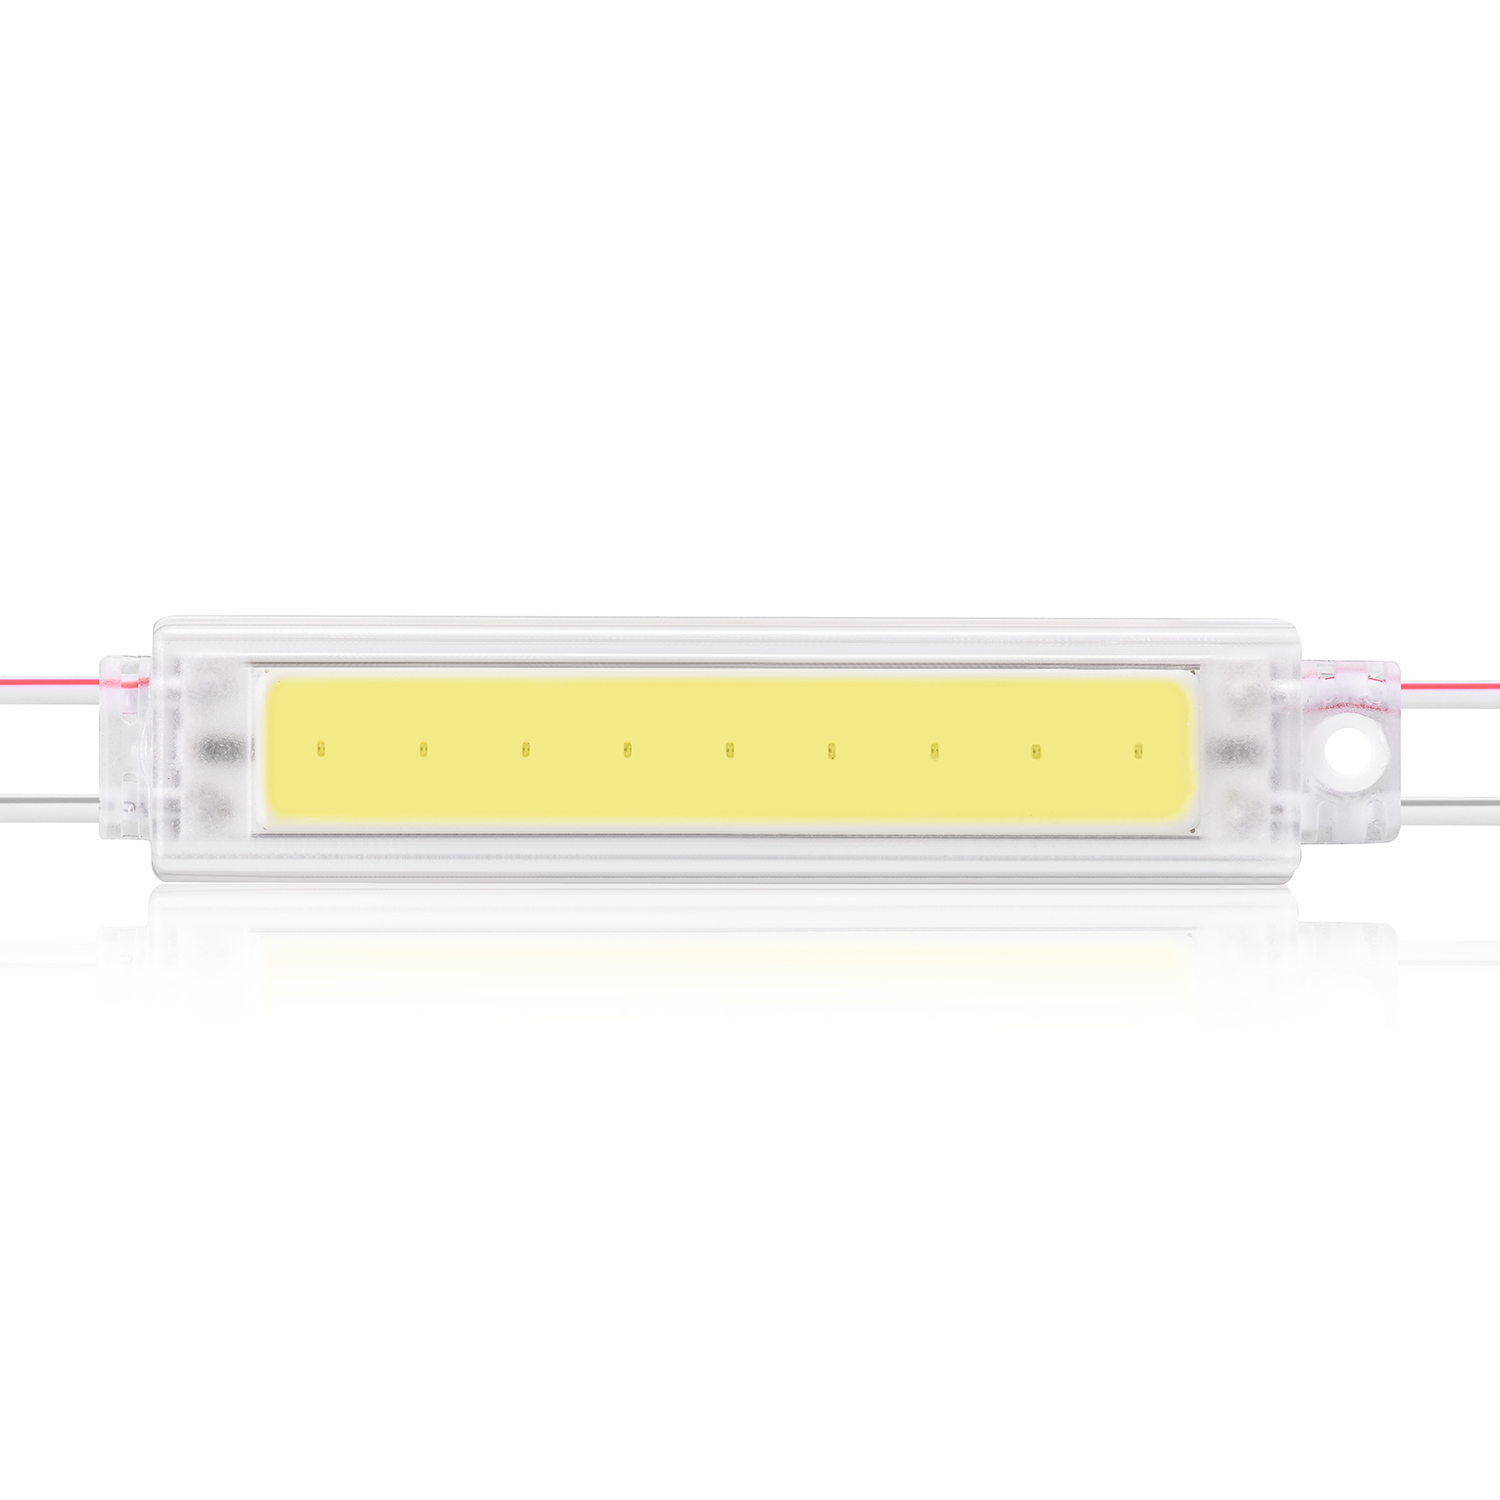 High quality COB 12V 2w led module light ip67 waterproof injection led module